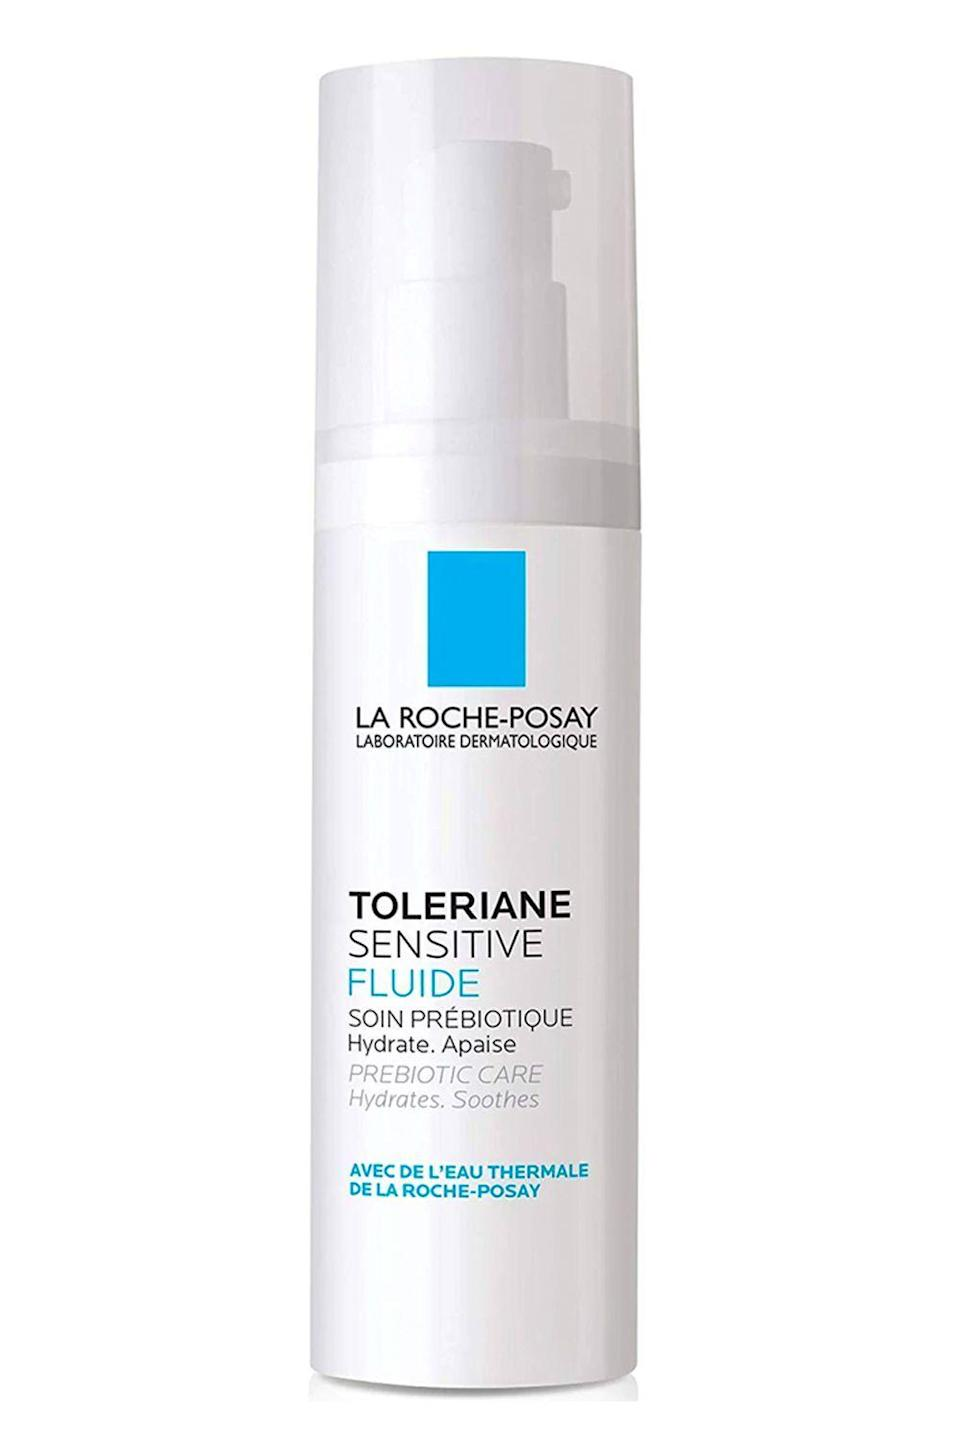 """<p><strong>La Roche-Posay</strong></p><p>laroche-posay.us</p><p><strong>$29.99</strong></p><p><a href=""""https://go.redirectingat.com?id=74968X1596630&url=https%3A%2F%2Fwww.laroche-posay.us%2Fface-and-body-skin-care%2Fface-products%2Fface-moisturizer%2Ftoleriane-fluide-oil-free-moisturizer-3337875588676.html&sref=https%3A%2F%2Fwww.cosmopolitan.com%2Fstyle-beauty%2Fbeauty%2Fg35089763%2Fbest-rosacea-skin-care-products%2F"""" rel=""""nofollow noopener"""" target=""""_blank"""" data-ylk=""""slk:Shop Now"""" class=""""link rapid-noclick-resp"""">Shop Now</a></p><p>If your rosacea-prone skin also happens to be <a href=""""https://www.cosmopolitan.com/style-beauty/beauty/g29191122/moisturizer-for-oily-acne-prone-skin/"""" rel=""""nofollow noopener"""" target=""""_blank"""" data-ylk=""""slk:oily"""" class=""""link rapid-noclick-resp"""">oily</a>, this moisturizer from La Roche-Posay is for you. The <strong>lightweight, oil-free lotion soaks into skin fast</strong> (so there's no greasy residue) and helps eliminate redness with niacinamide, glycerin, and the brand's famous healing spring water.</p>"""